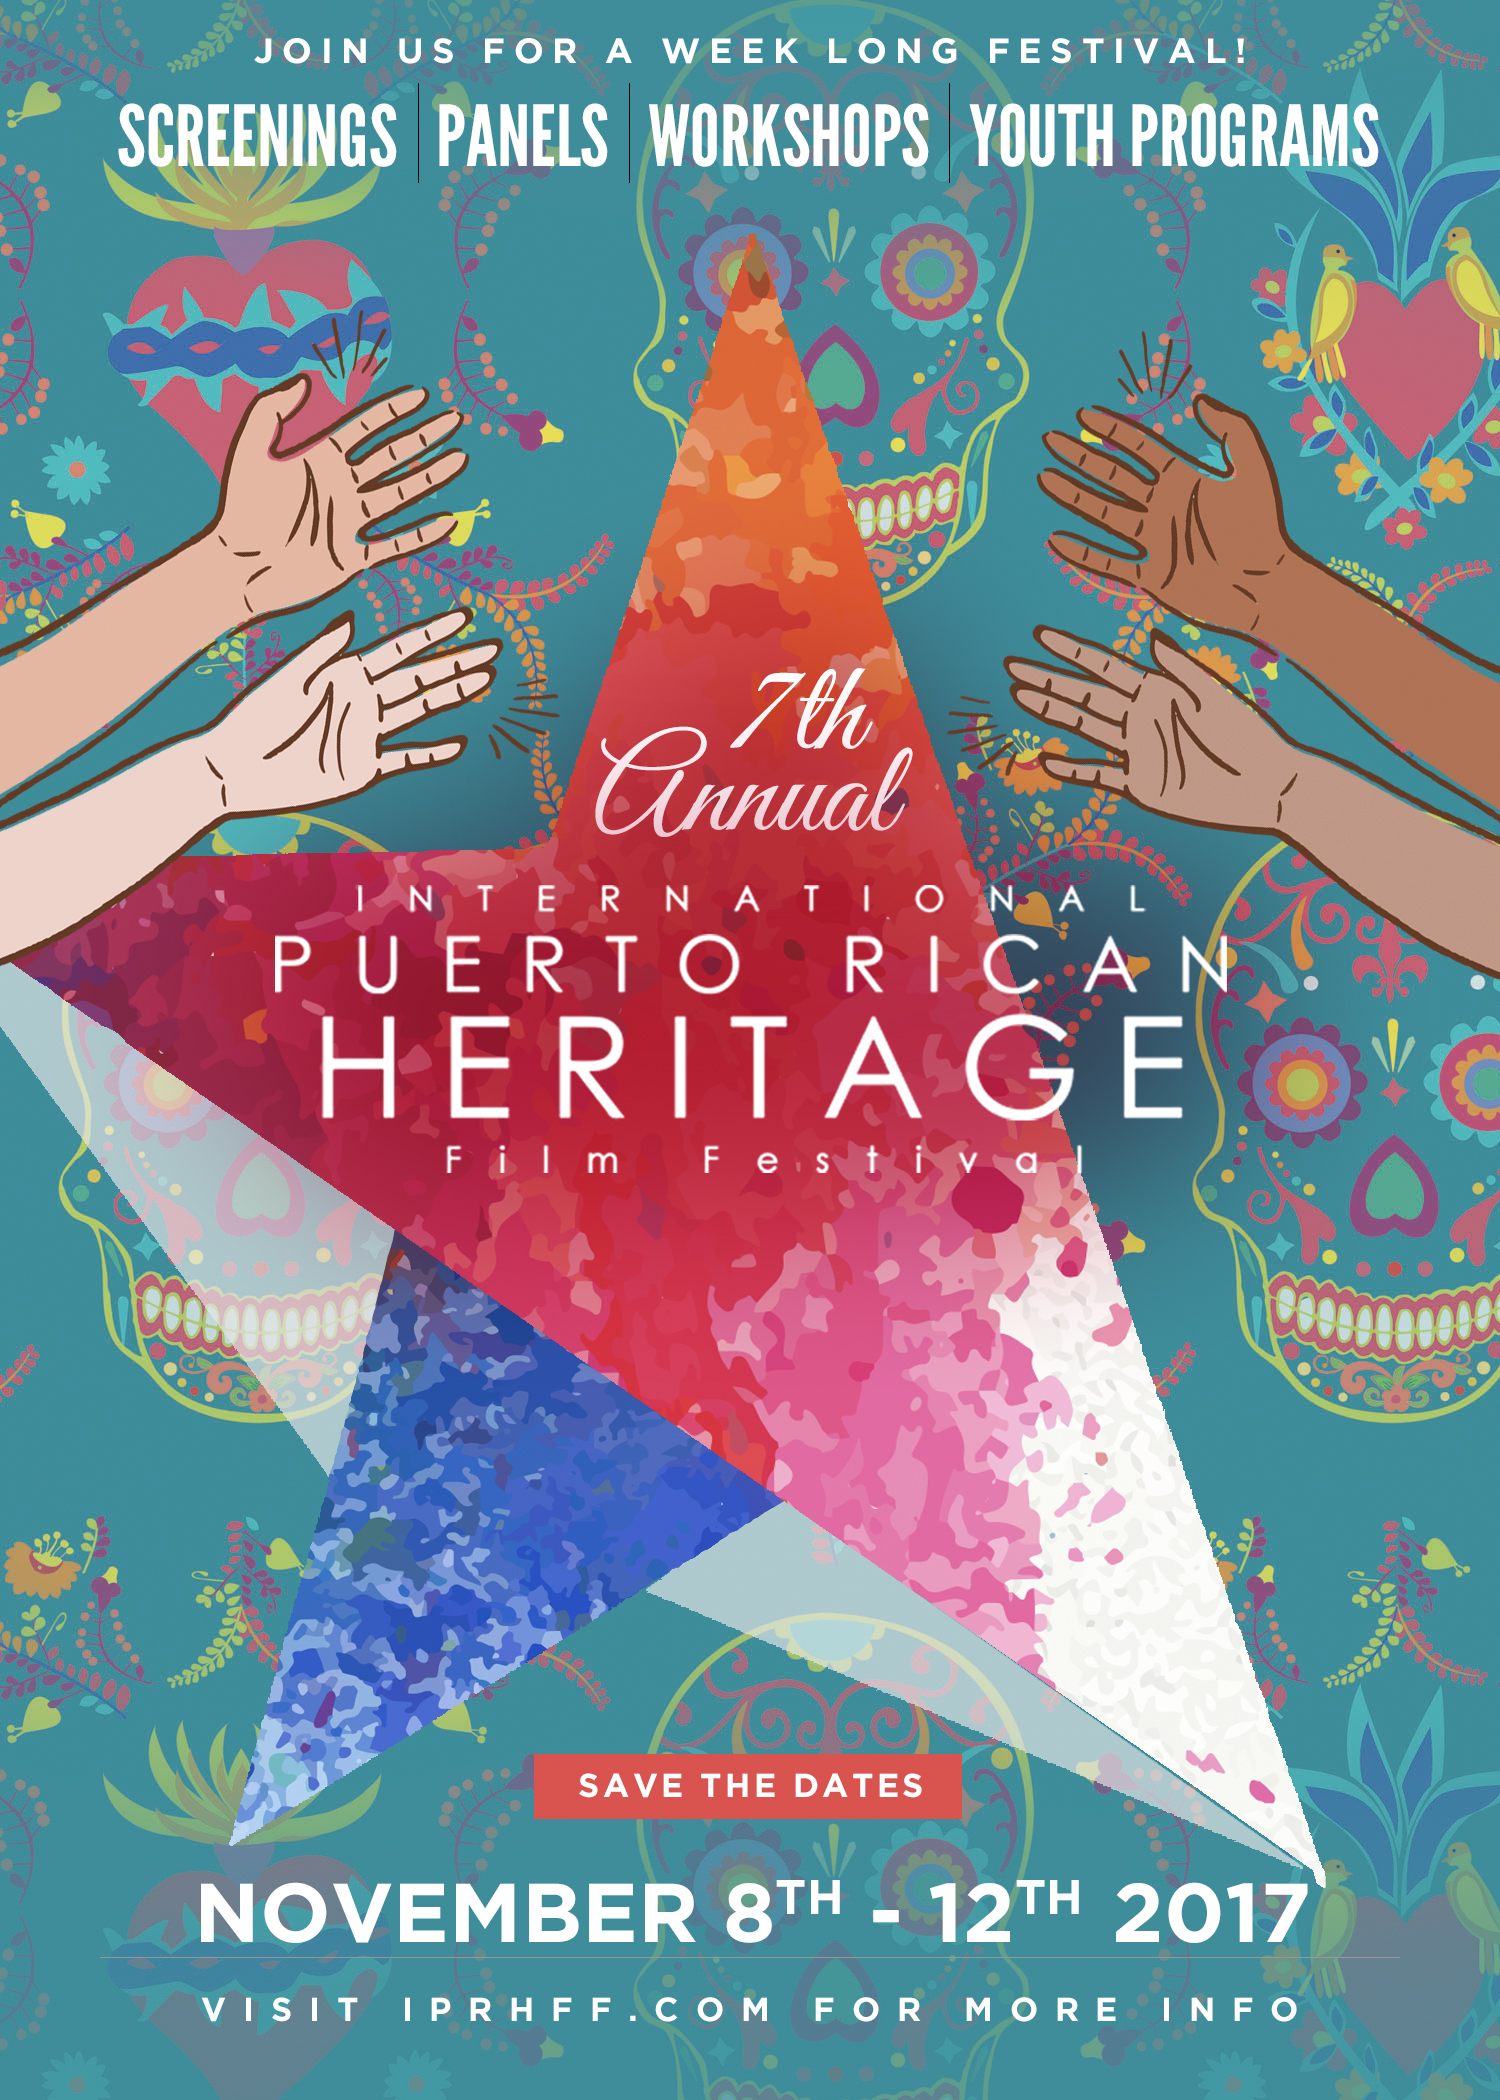 Titeres En El caribe (Cuba) - 7th Annual International Puerto Rican Heritage Film Festival